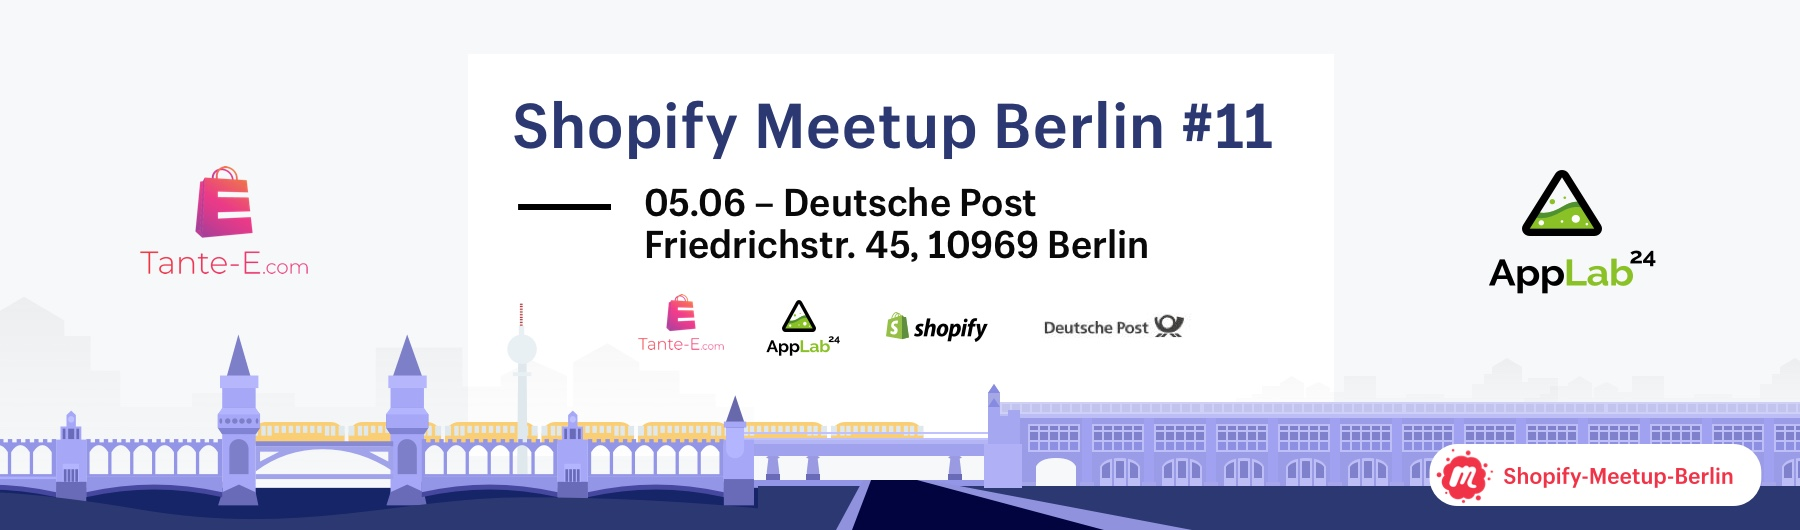 Shopify Meetup Berlin #11